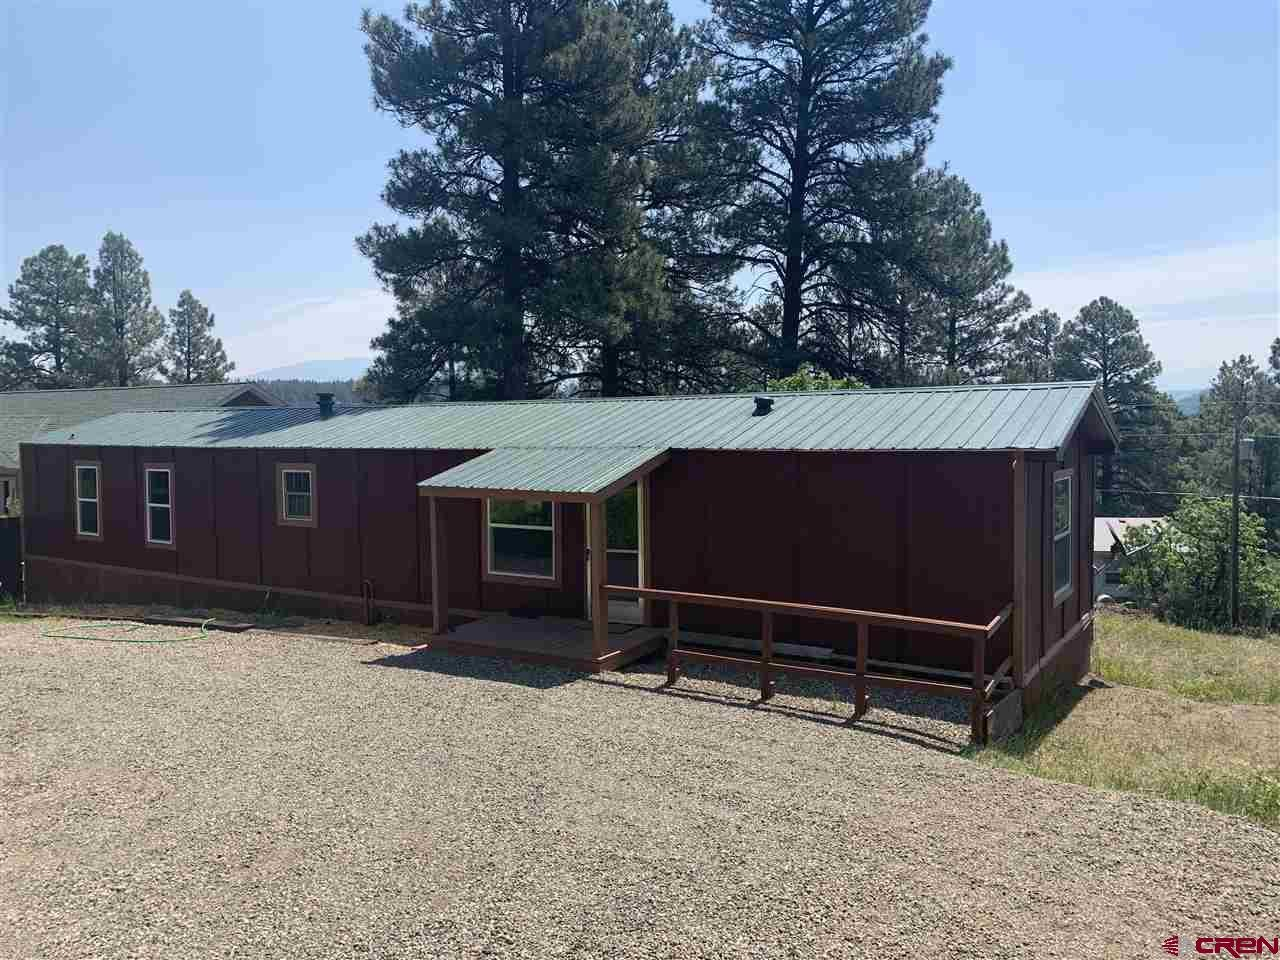 Address N/A.: Yes Without Address, Pagosa Springs Real Estate